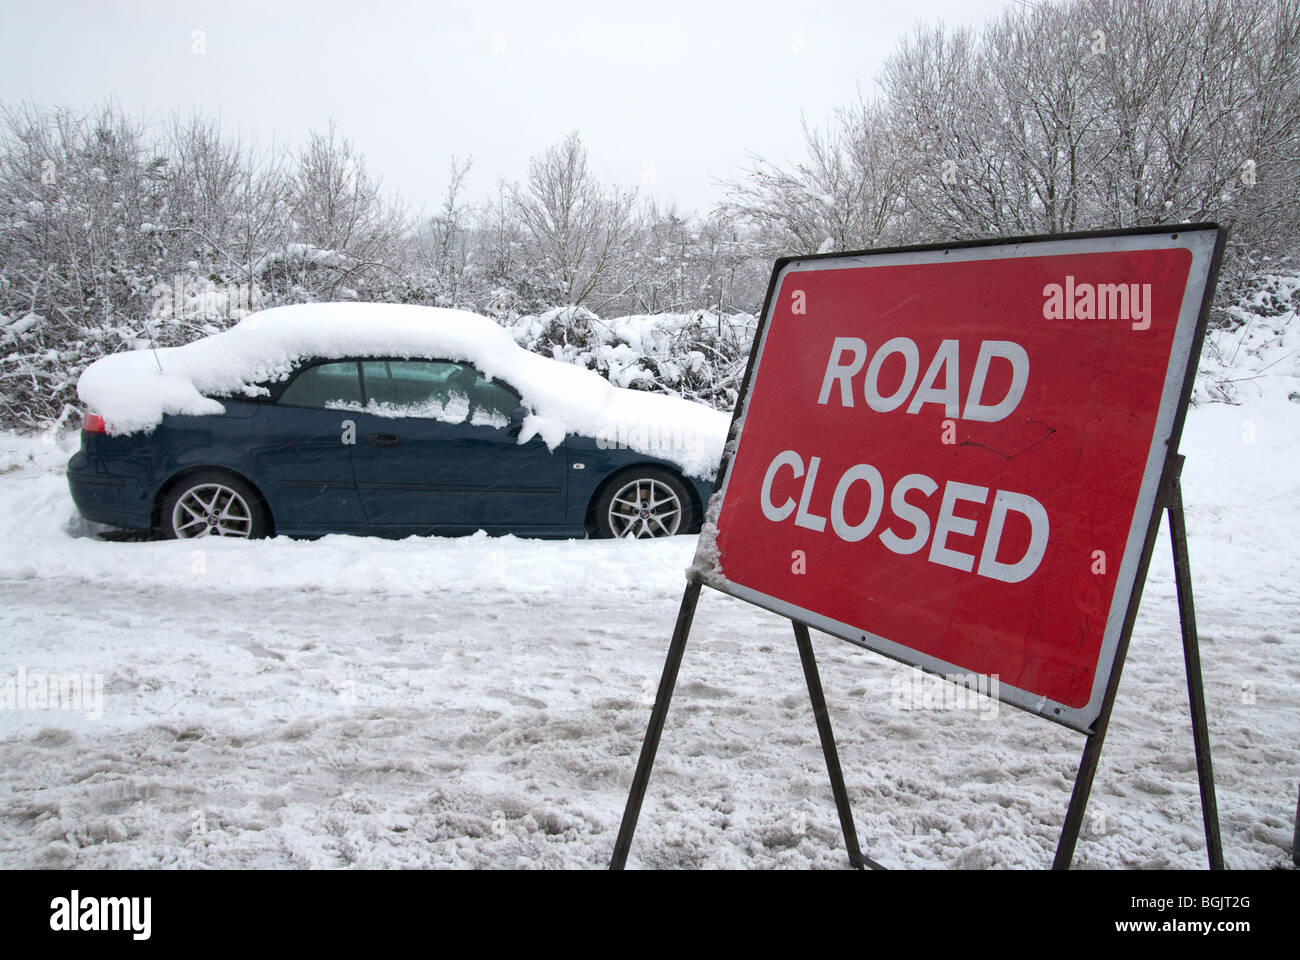 Abandoded vehicles and road closed signs. Major snow fall A3 area of hampshire january 2010 - Stock Image